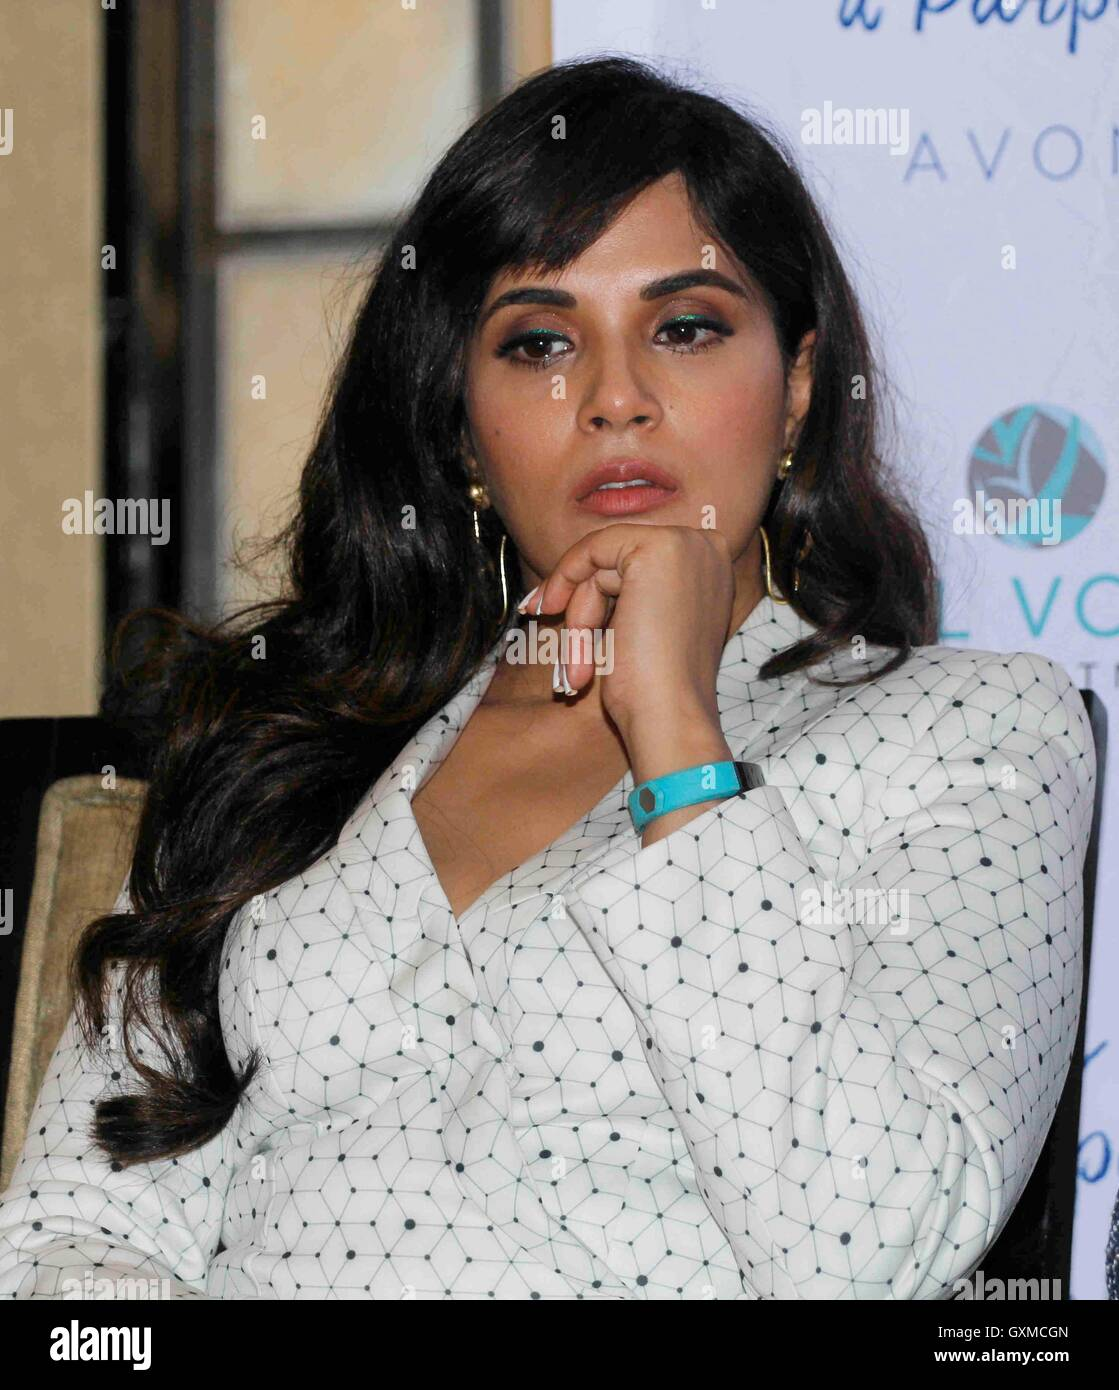 Stock Photo - Bollywood actor Richa Chadda panel discussion Gender Based Violence India organised by Avon Foundation Vital Voices Mumbai